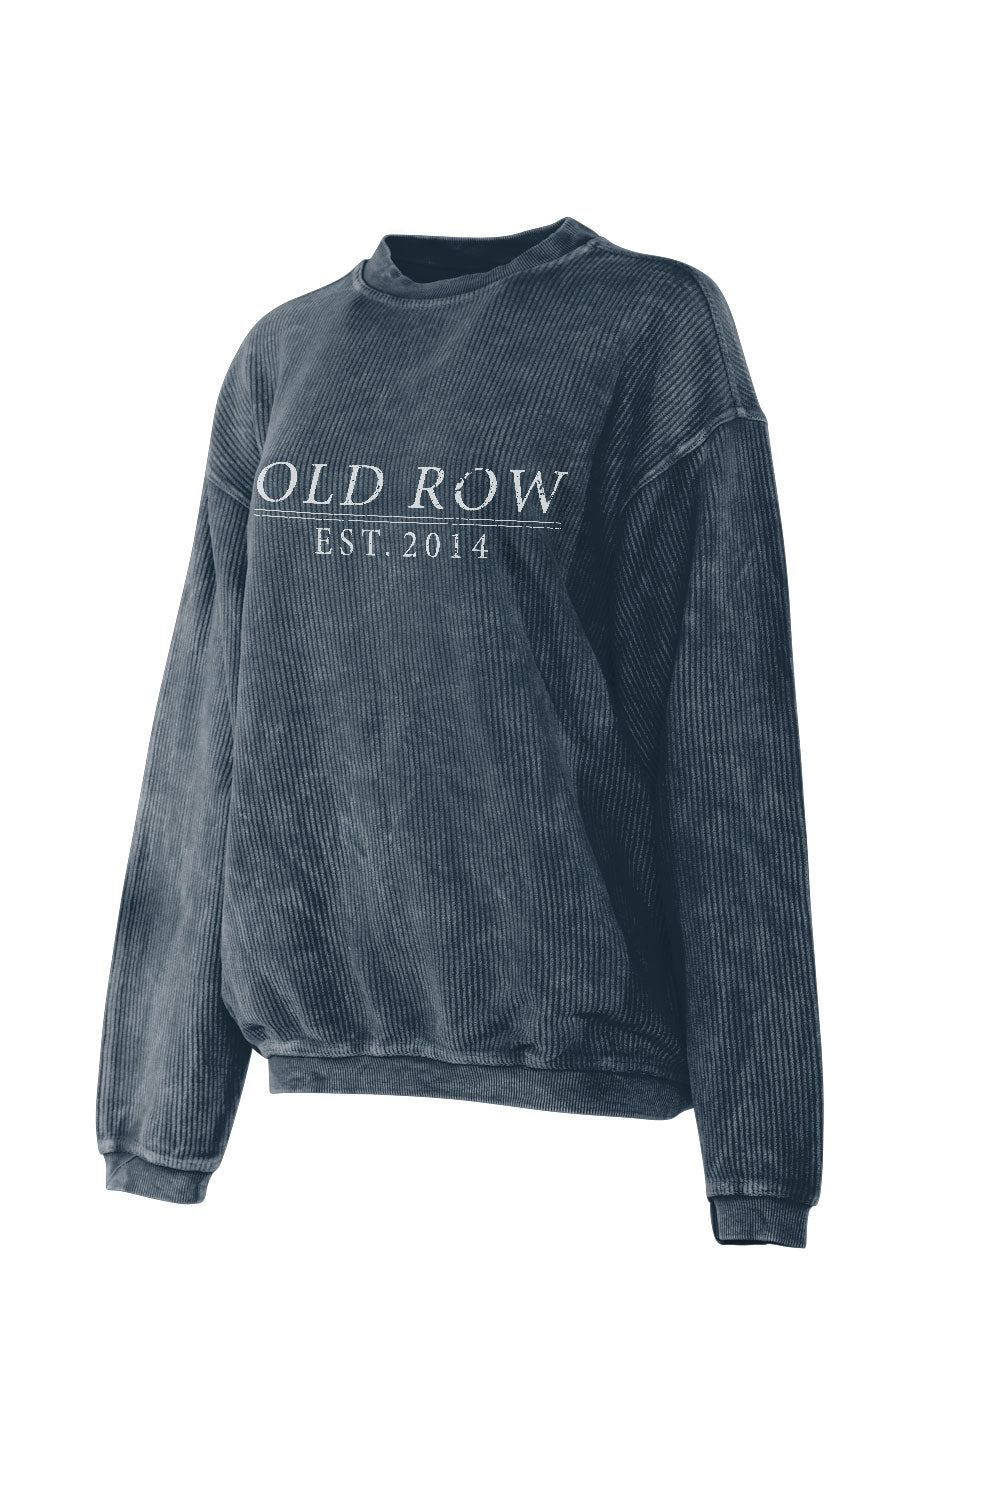 Old Row Corded Crewneck